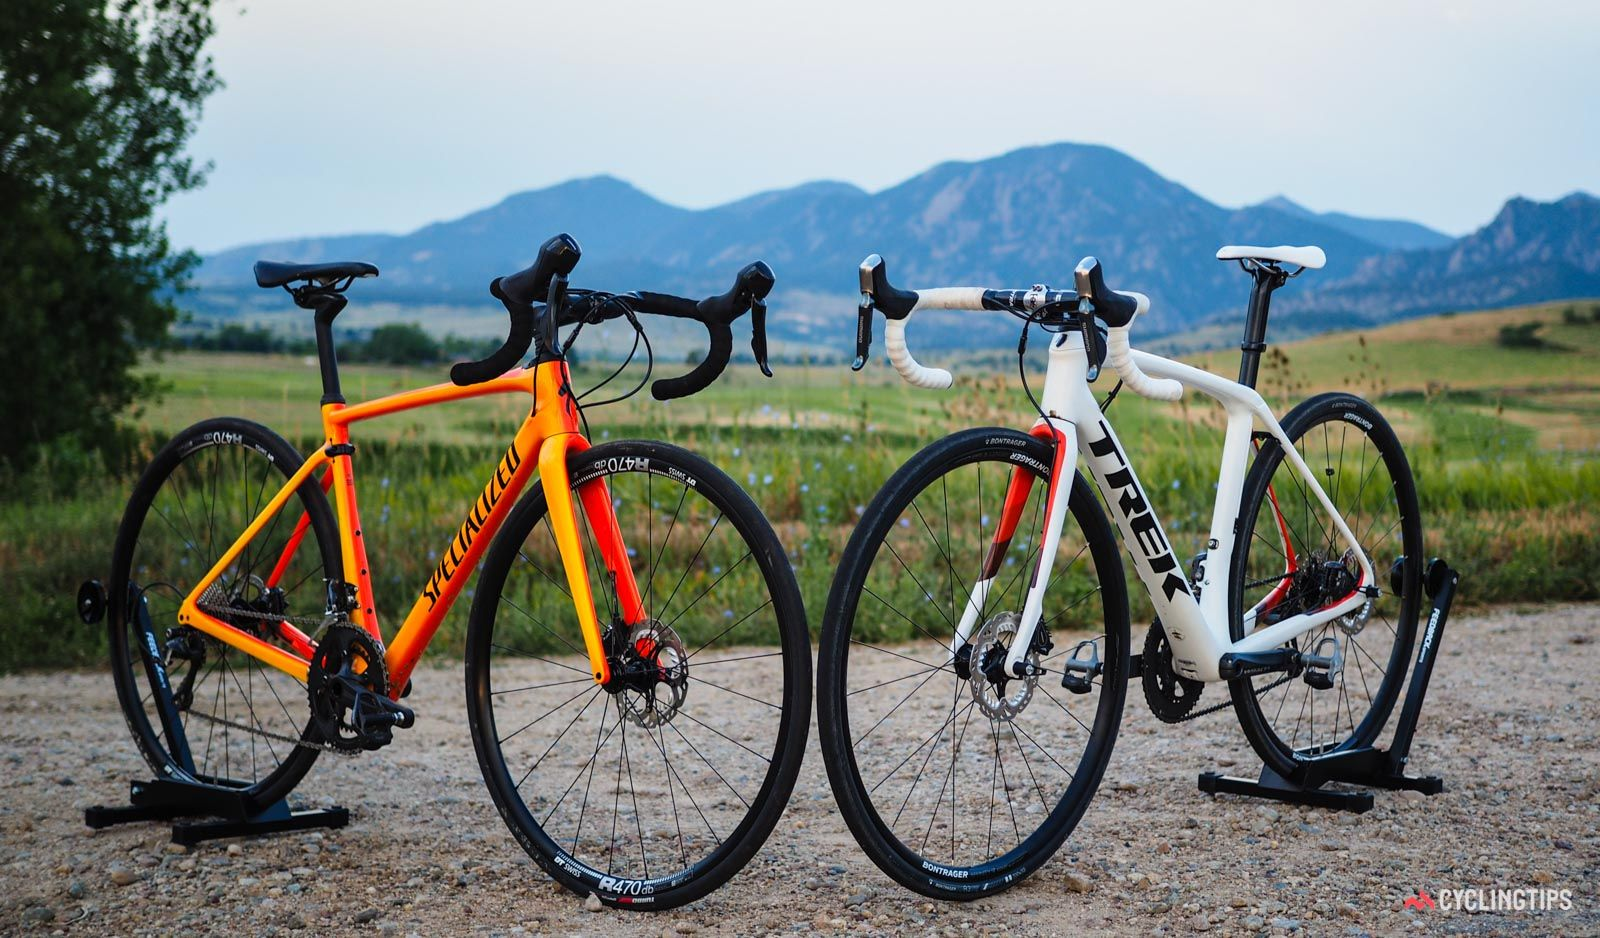 The Specialized Roubaix And Trek Domane Slr Are Arguably The Top Two Endurance Road Bikes On The Market But Bike Riding Benefits Mountain Bike Training Bike